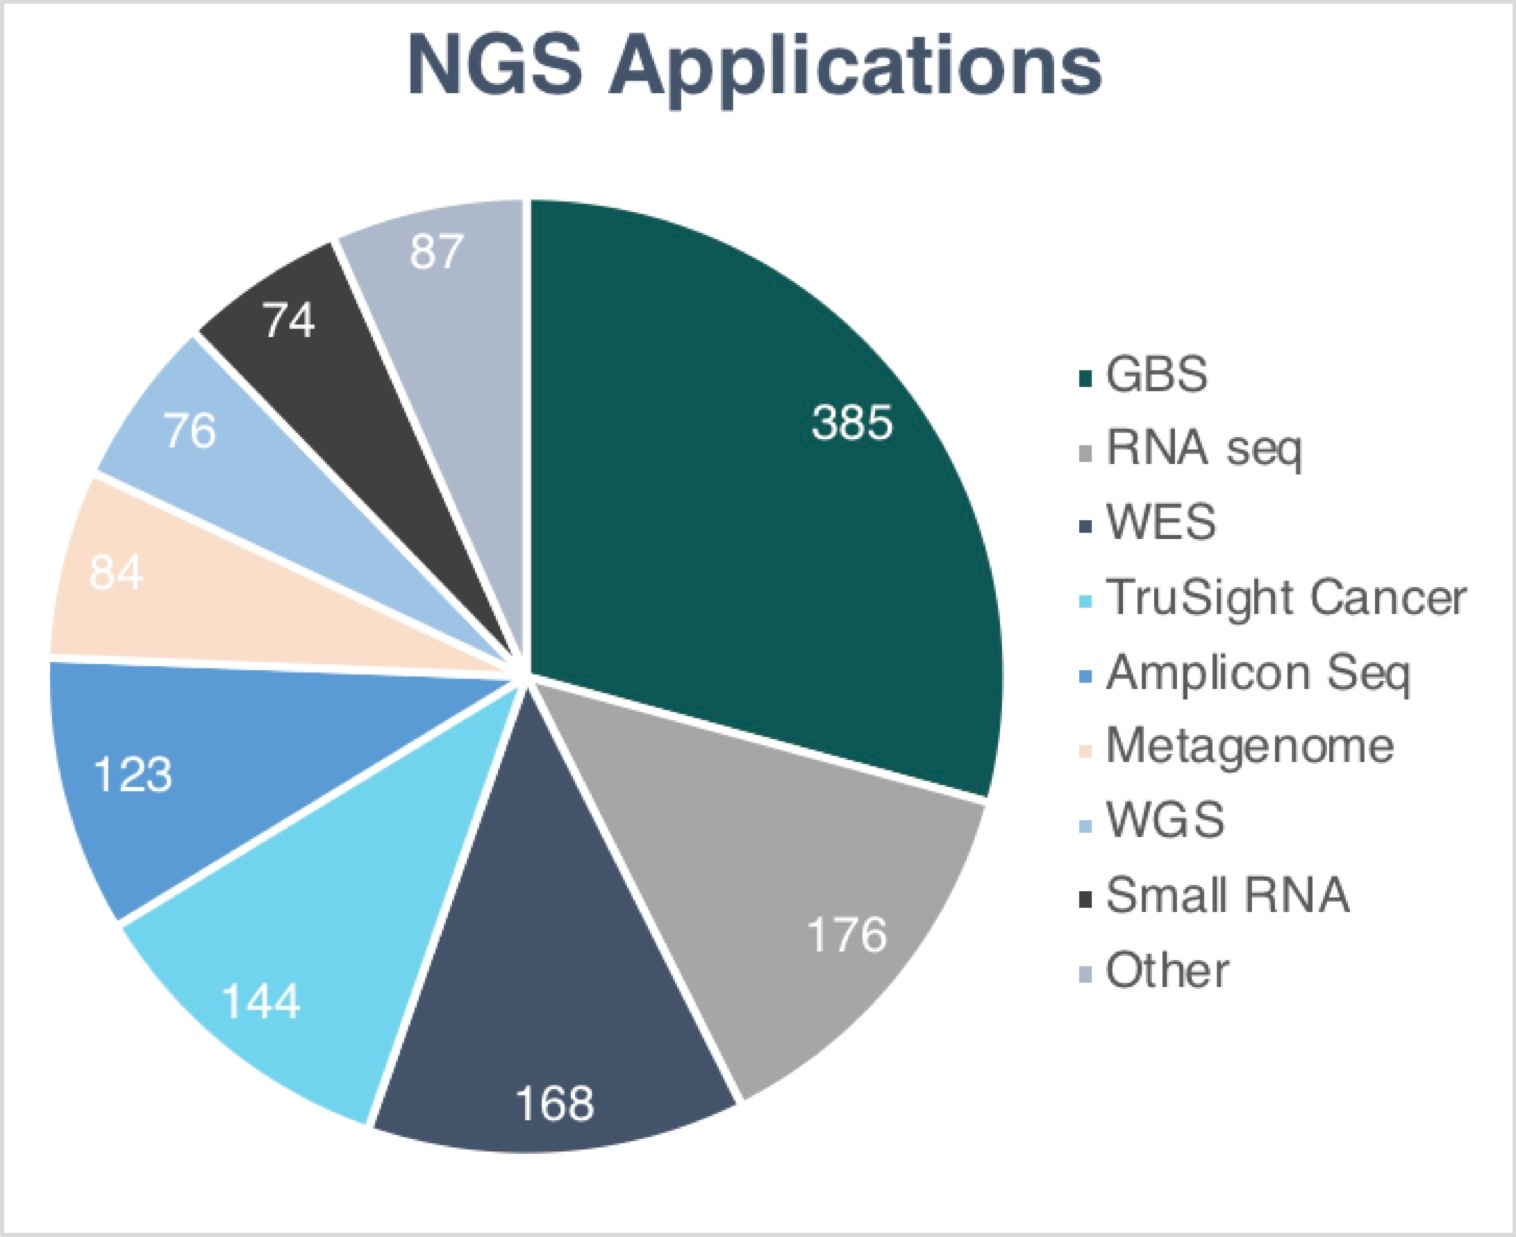 REPROCELL-India-NGS-apps